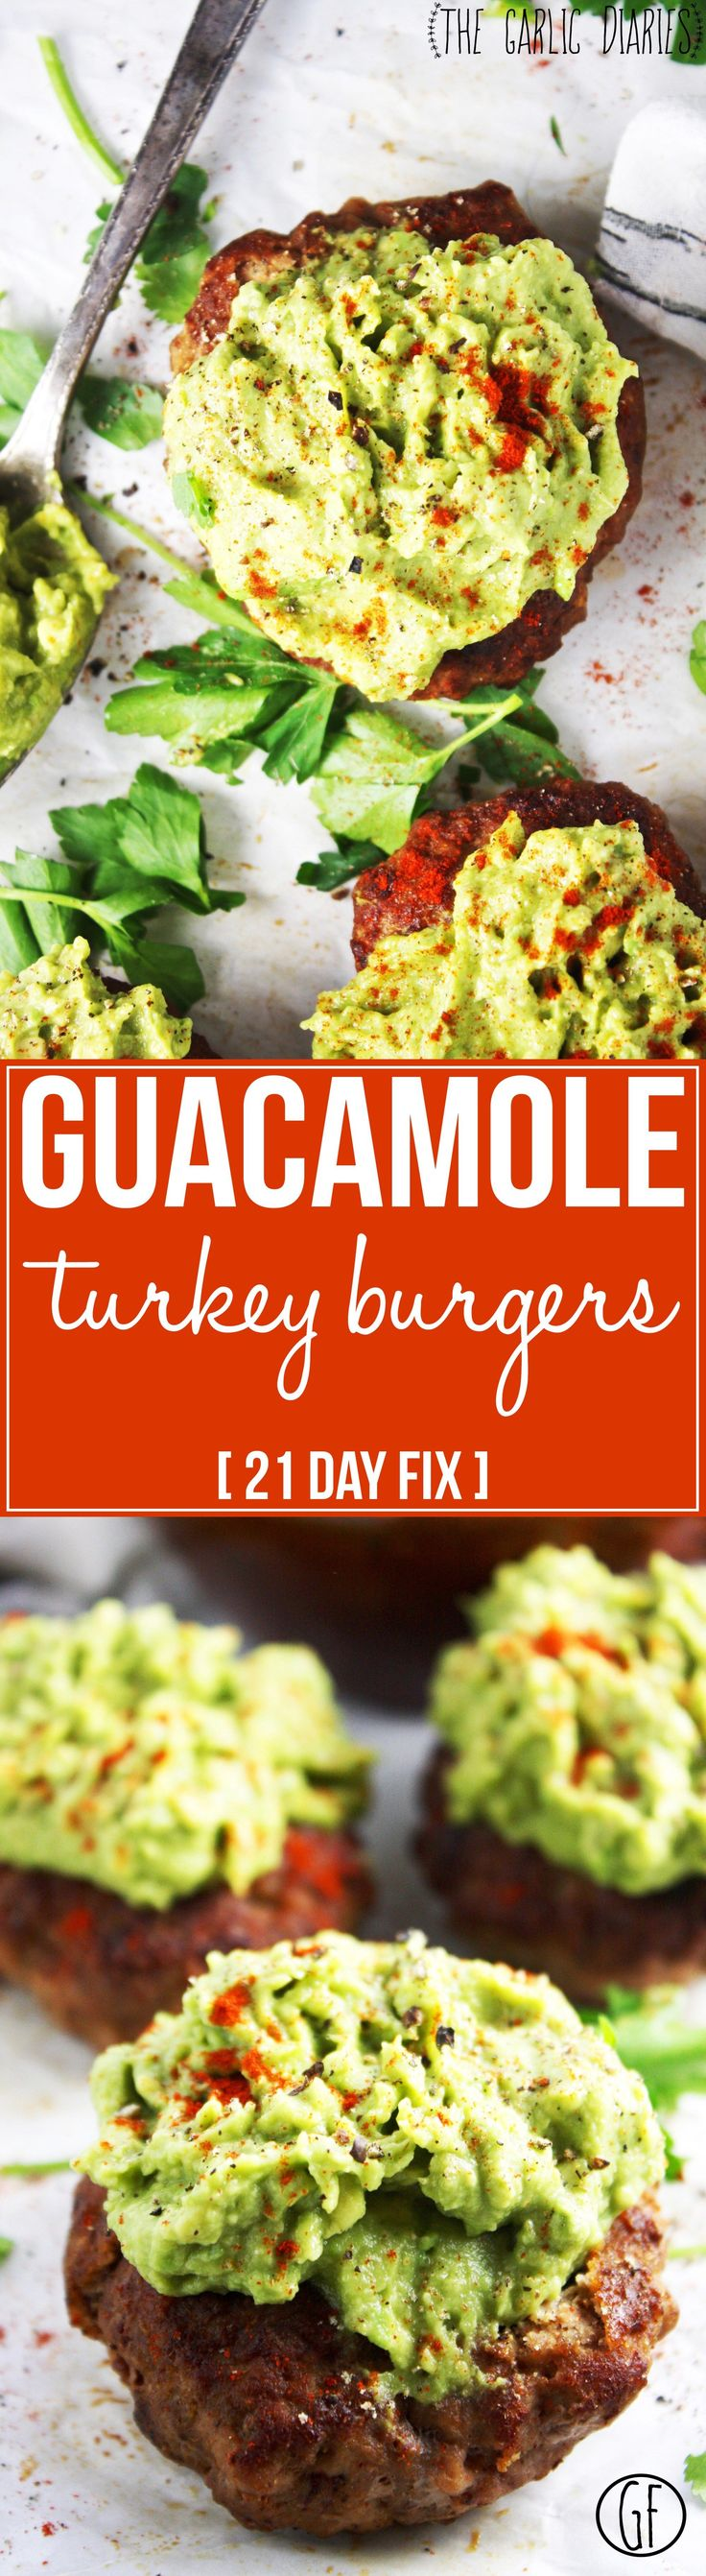 Guacamole Turkey Burgers [21 Day Fix] - Mexican spiced turkey, super simple guacamole, and one deliciously healthy meal! Easy and SO mouthwatering. Gluten free - TheGarlicDiaries.com